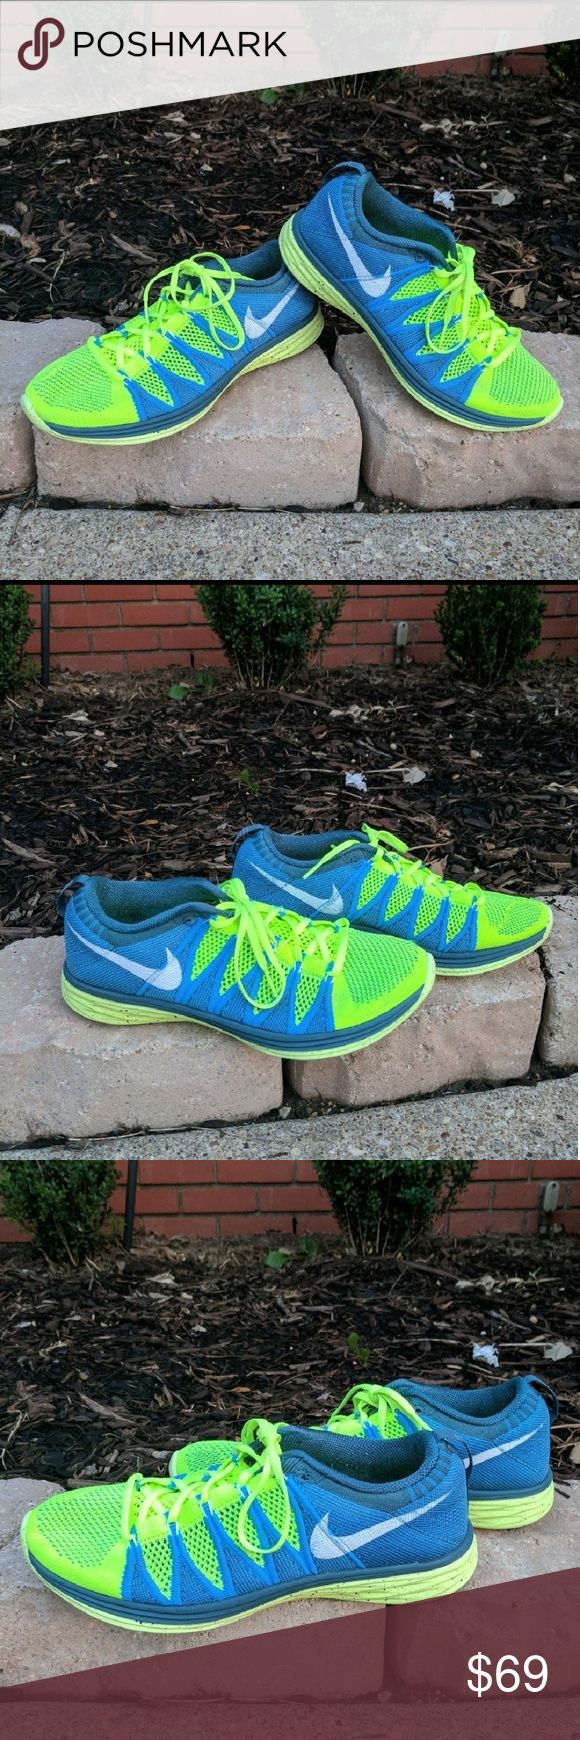 Men's Flyknit lunar Excellent used condition men's Nike Flyknit lunar running shoes. Blue and neon yellowish green. Men's size 9. Nike Shoes Athletic Shoes